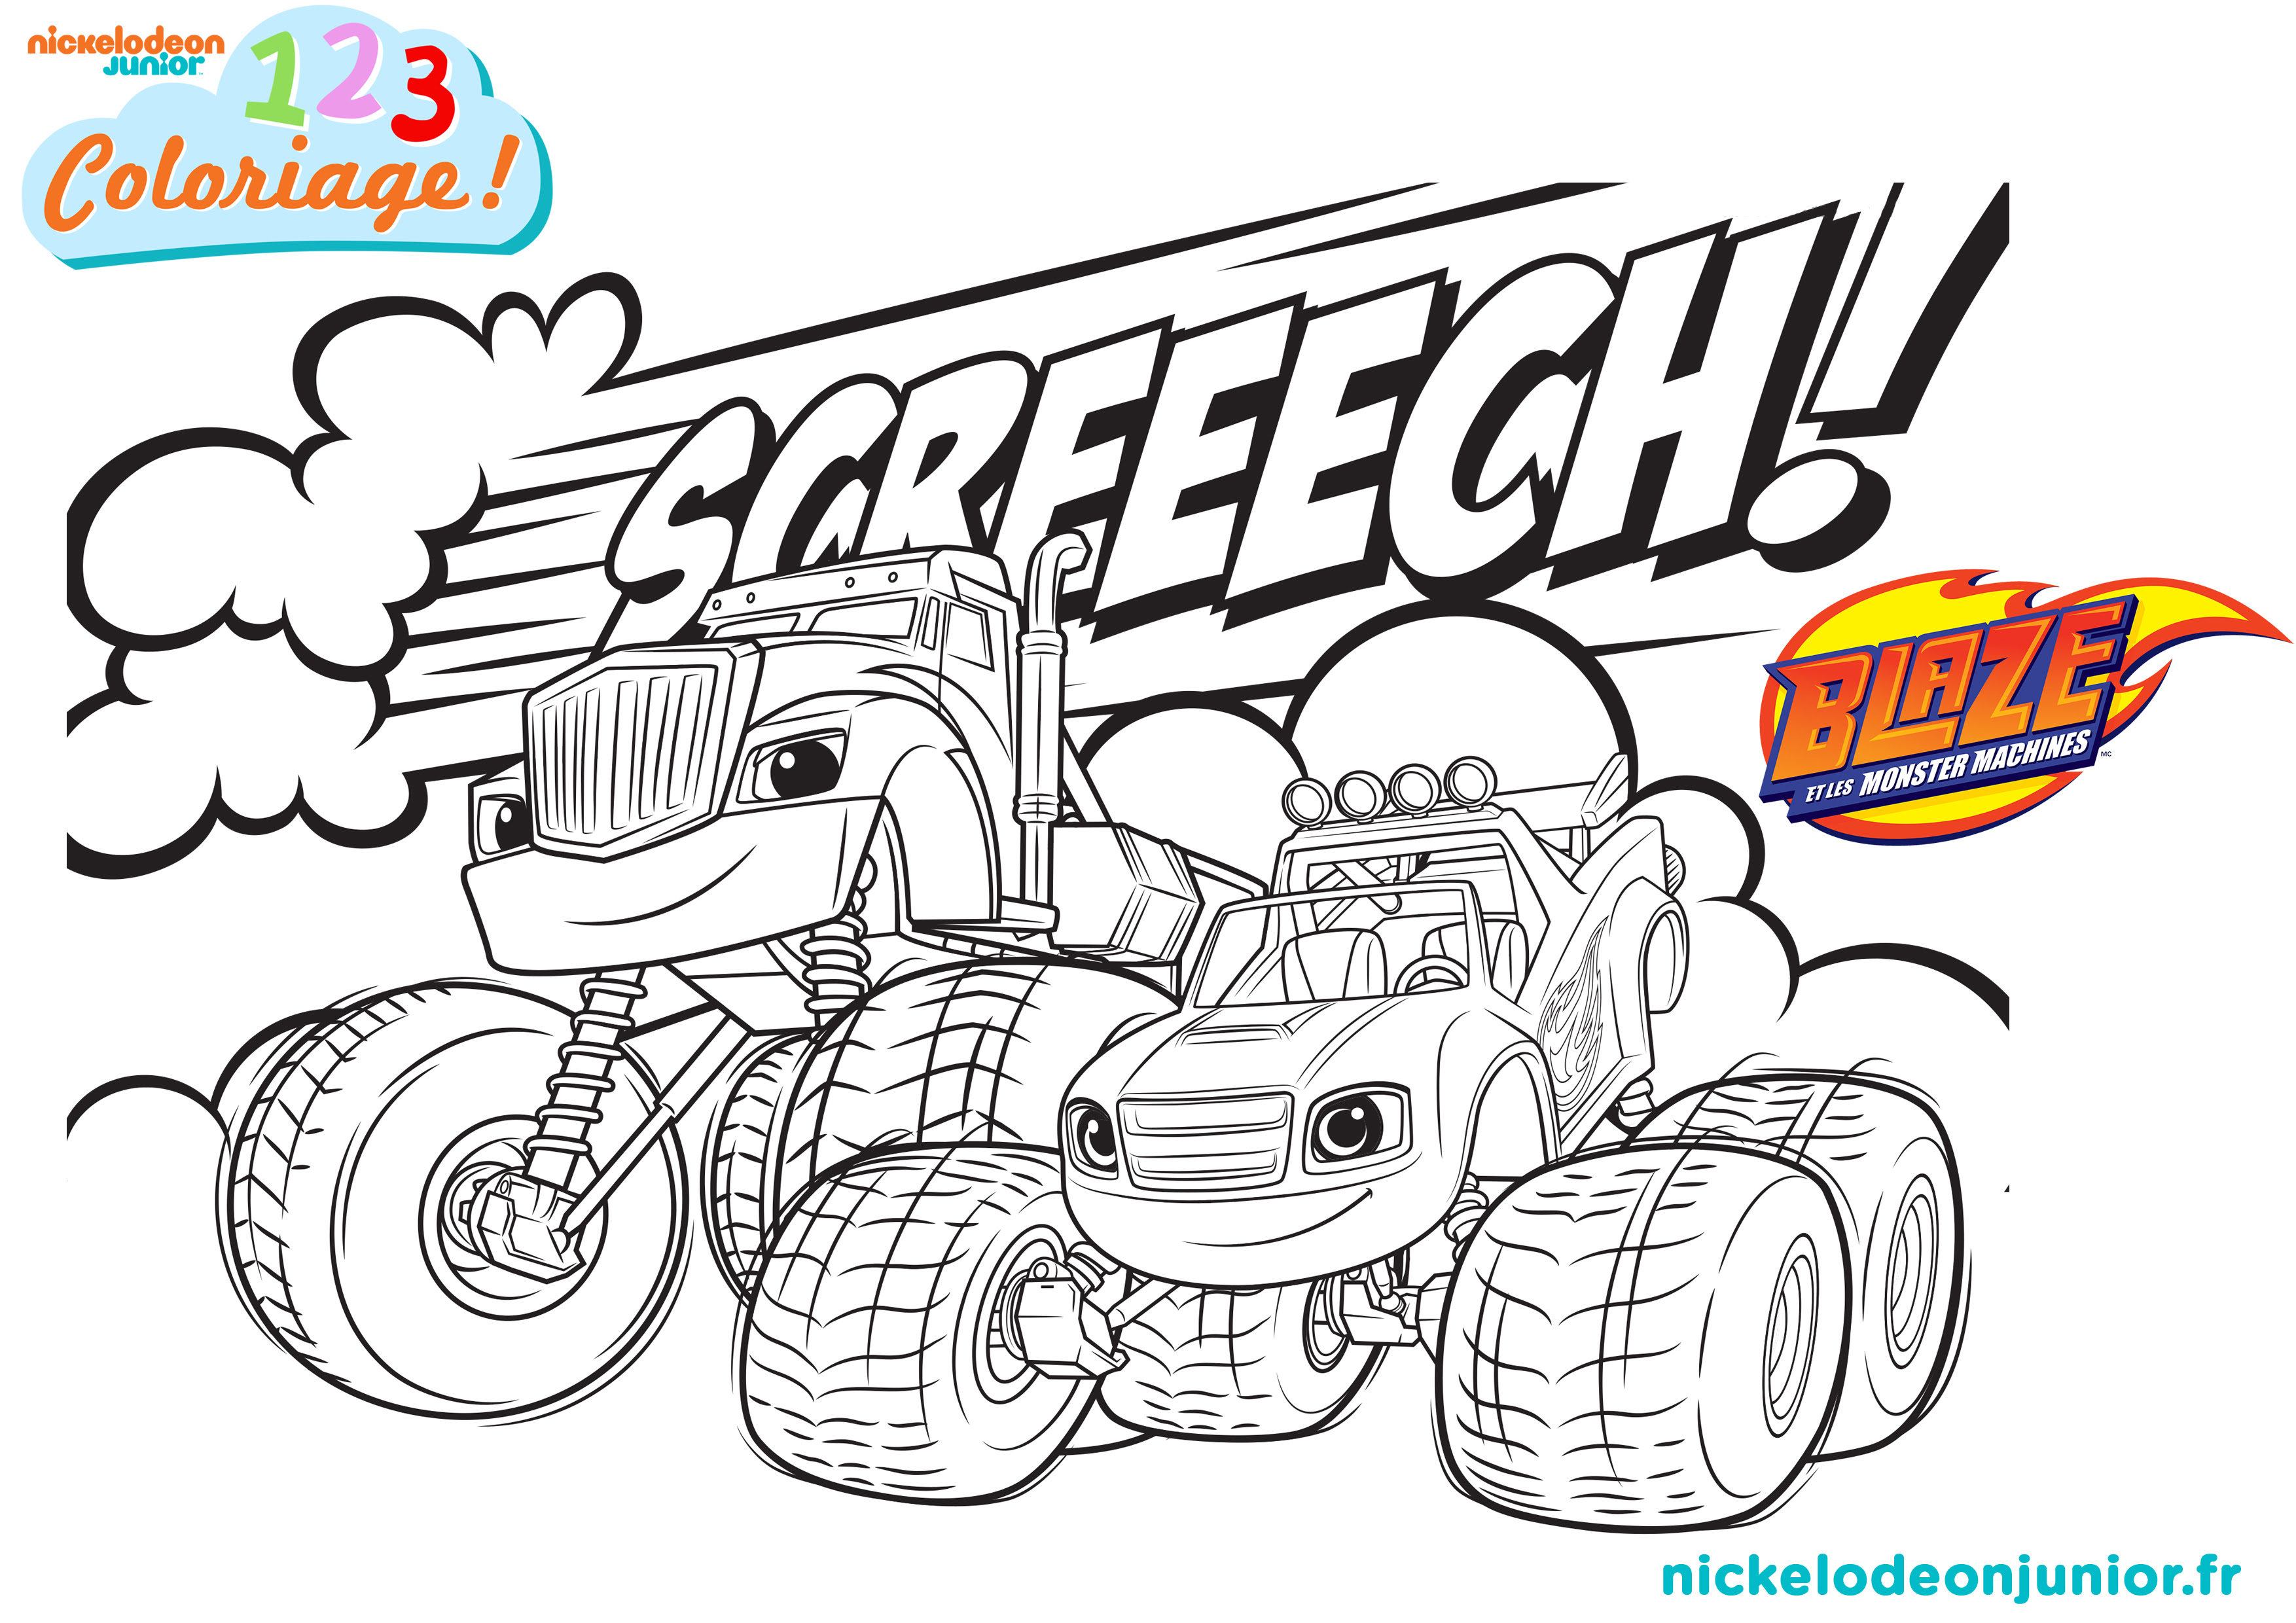 Coloriages Blaze et les Monster Machines